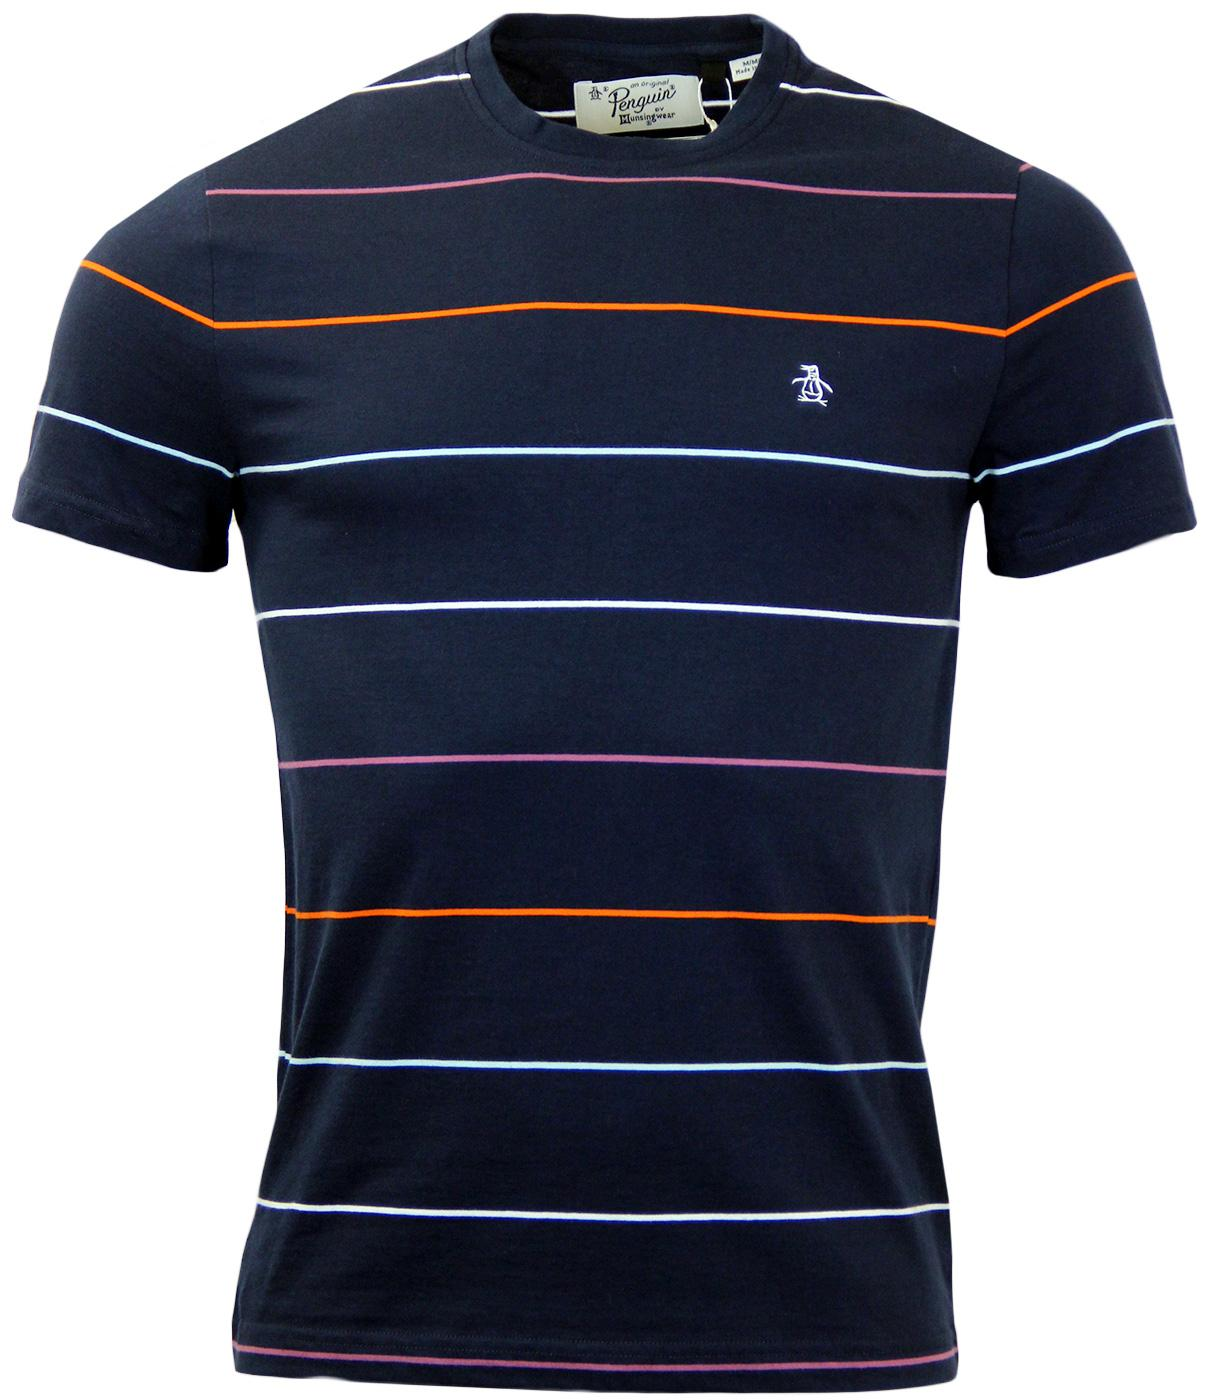 Whittle ORIGINAL PENGUIN Colour Pop Stripe T-Shirt